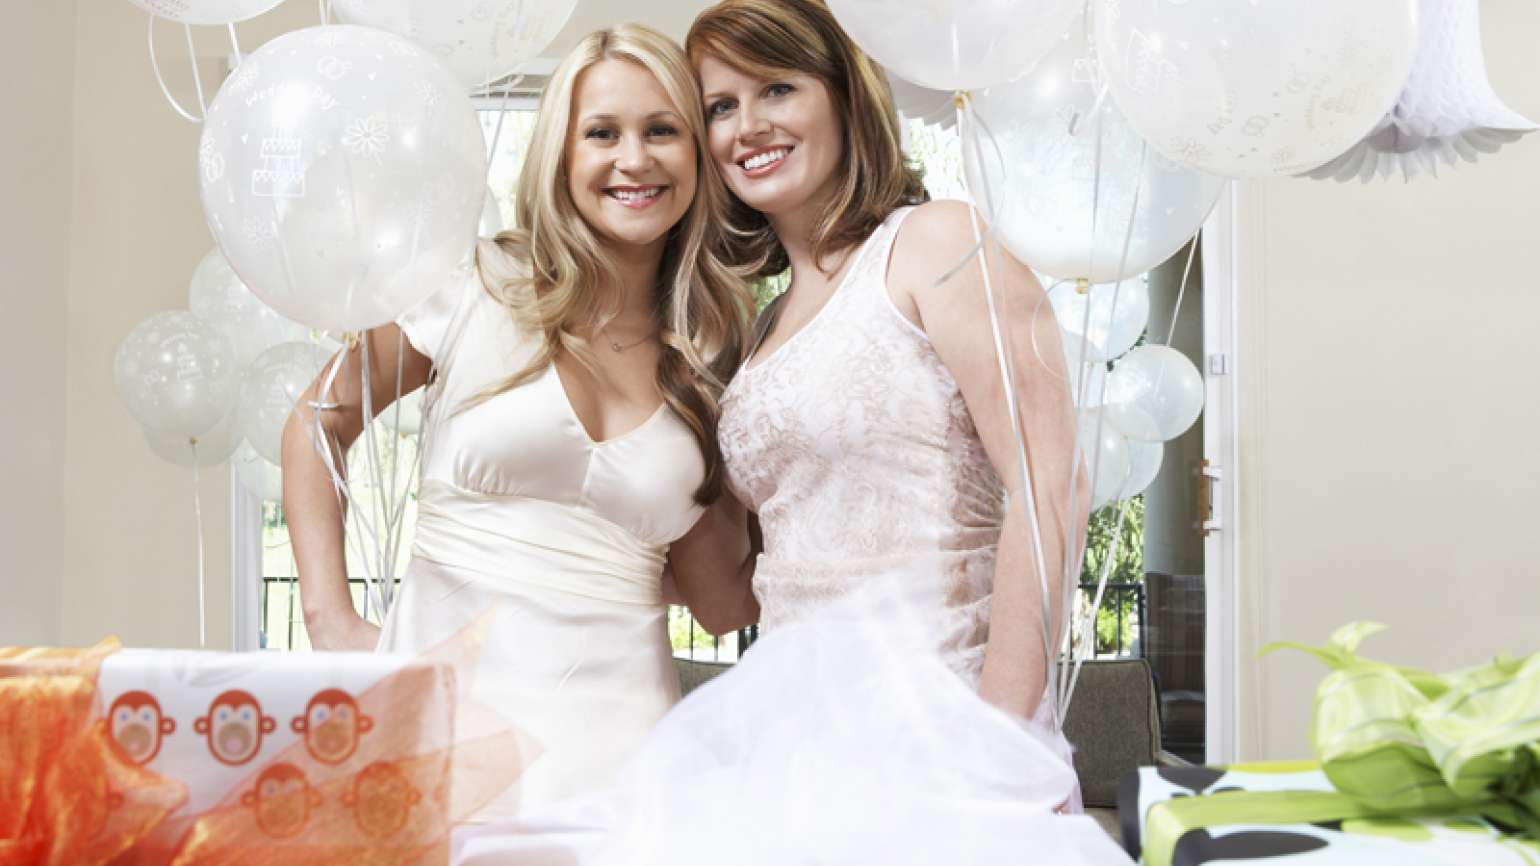 Two smiling women pose for a photo at a bridal shower.